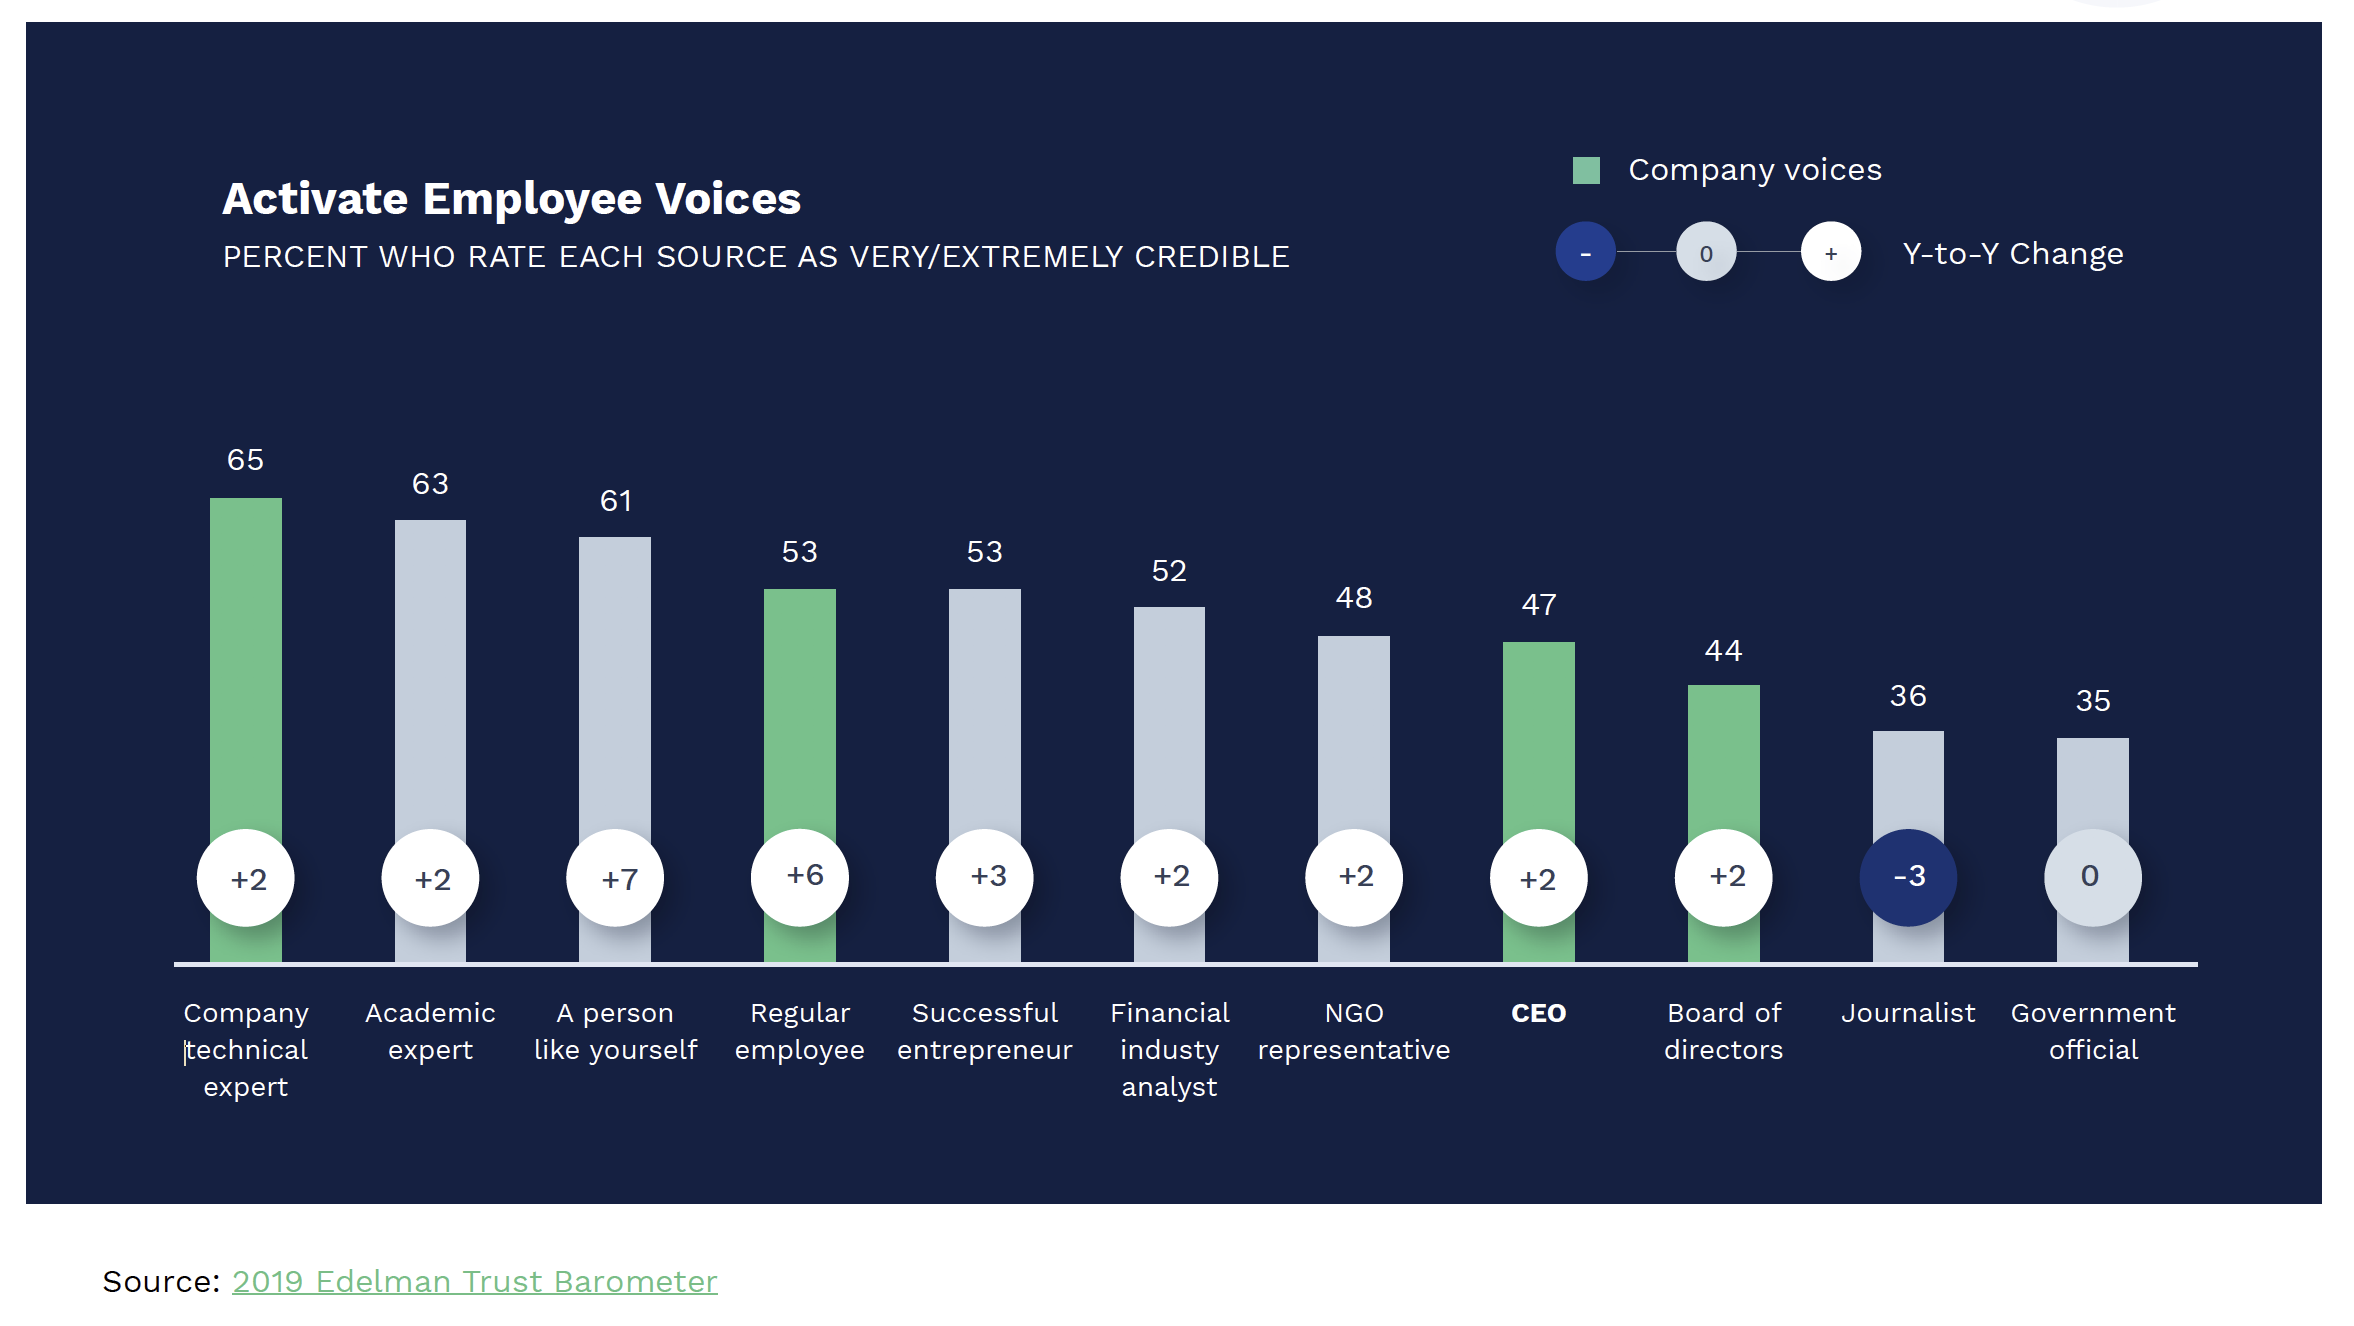 Active Employee Voices - Percentage who rate each source as very/extremely credible. Source: 2019 Edelman Trust Barometer